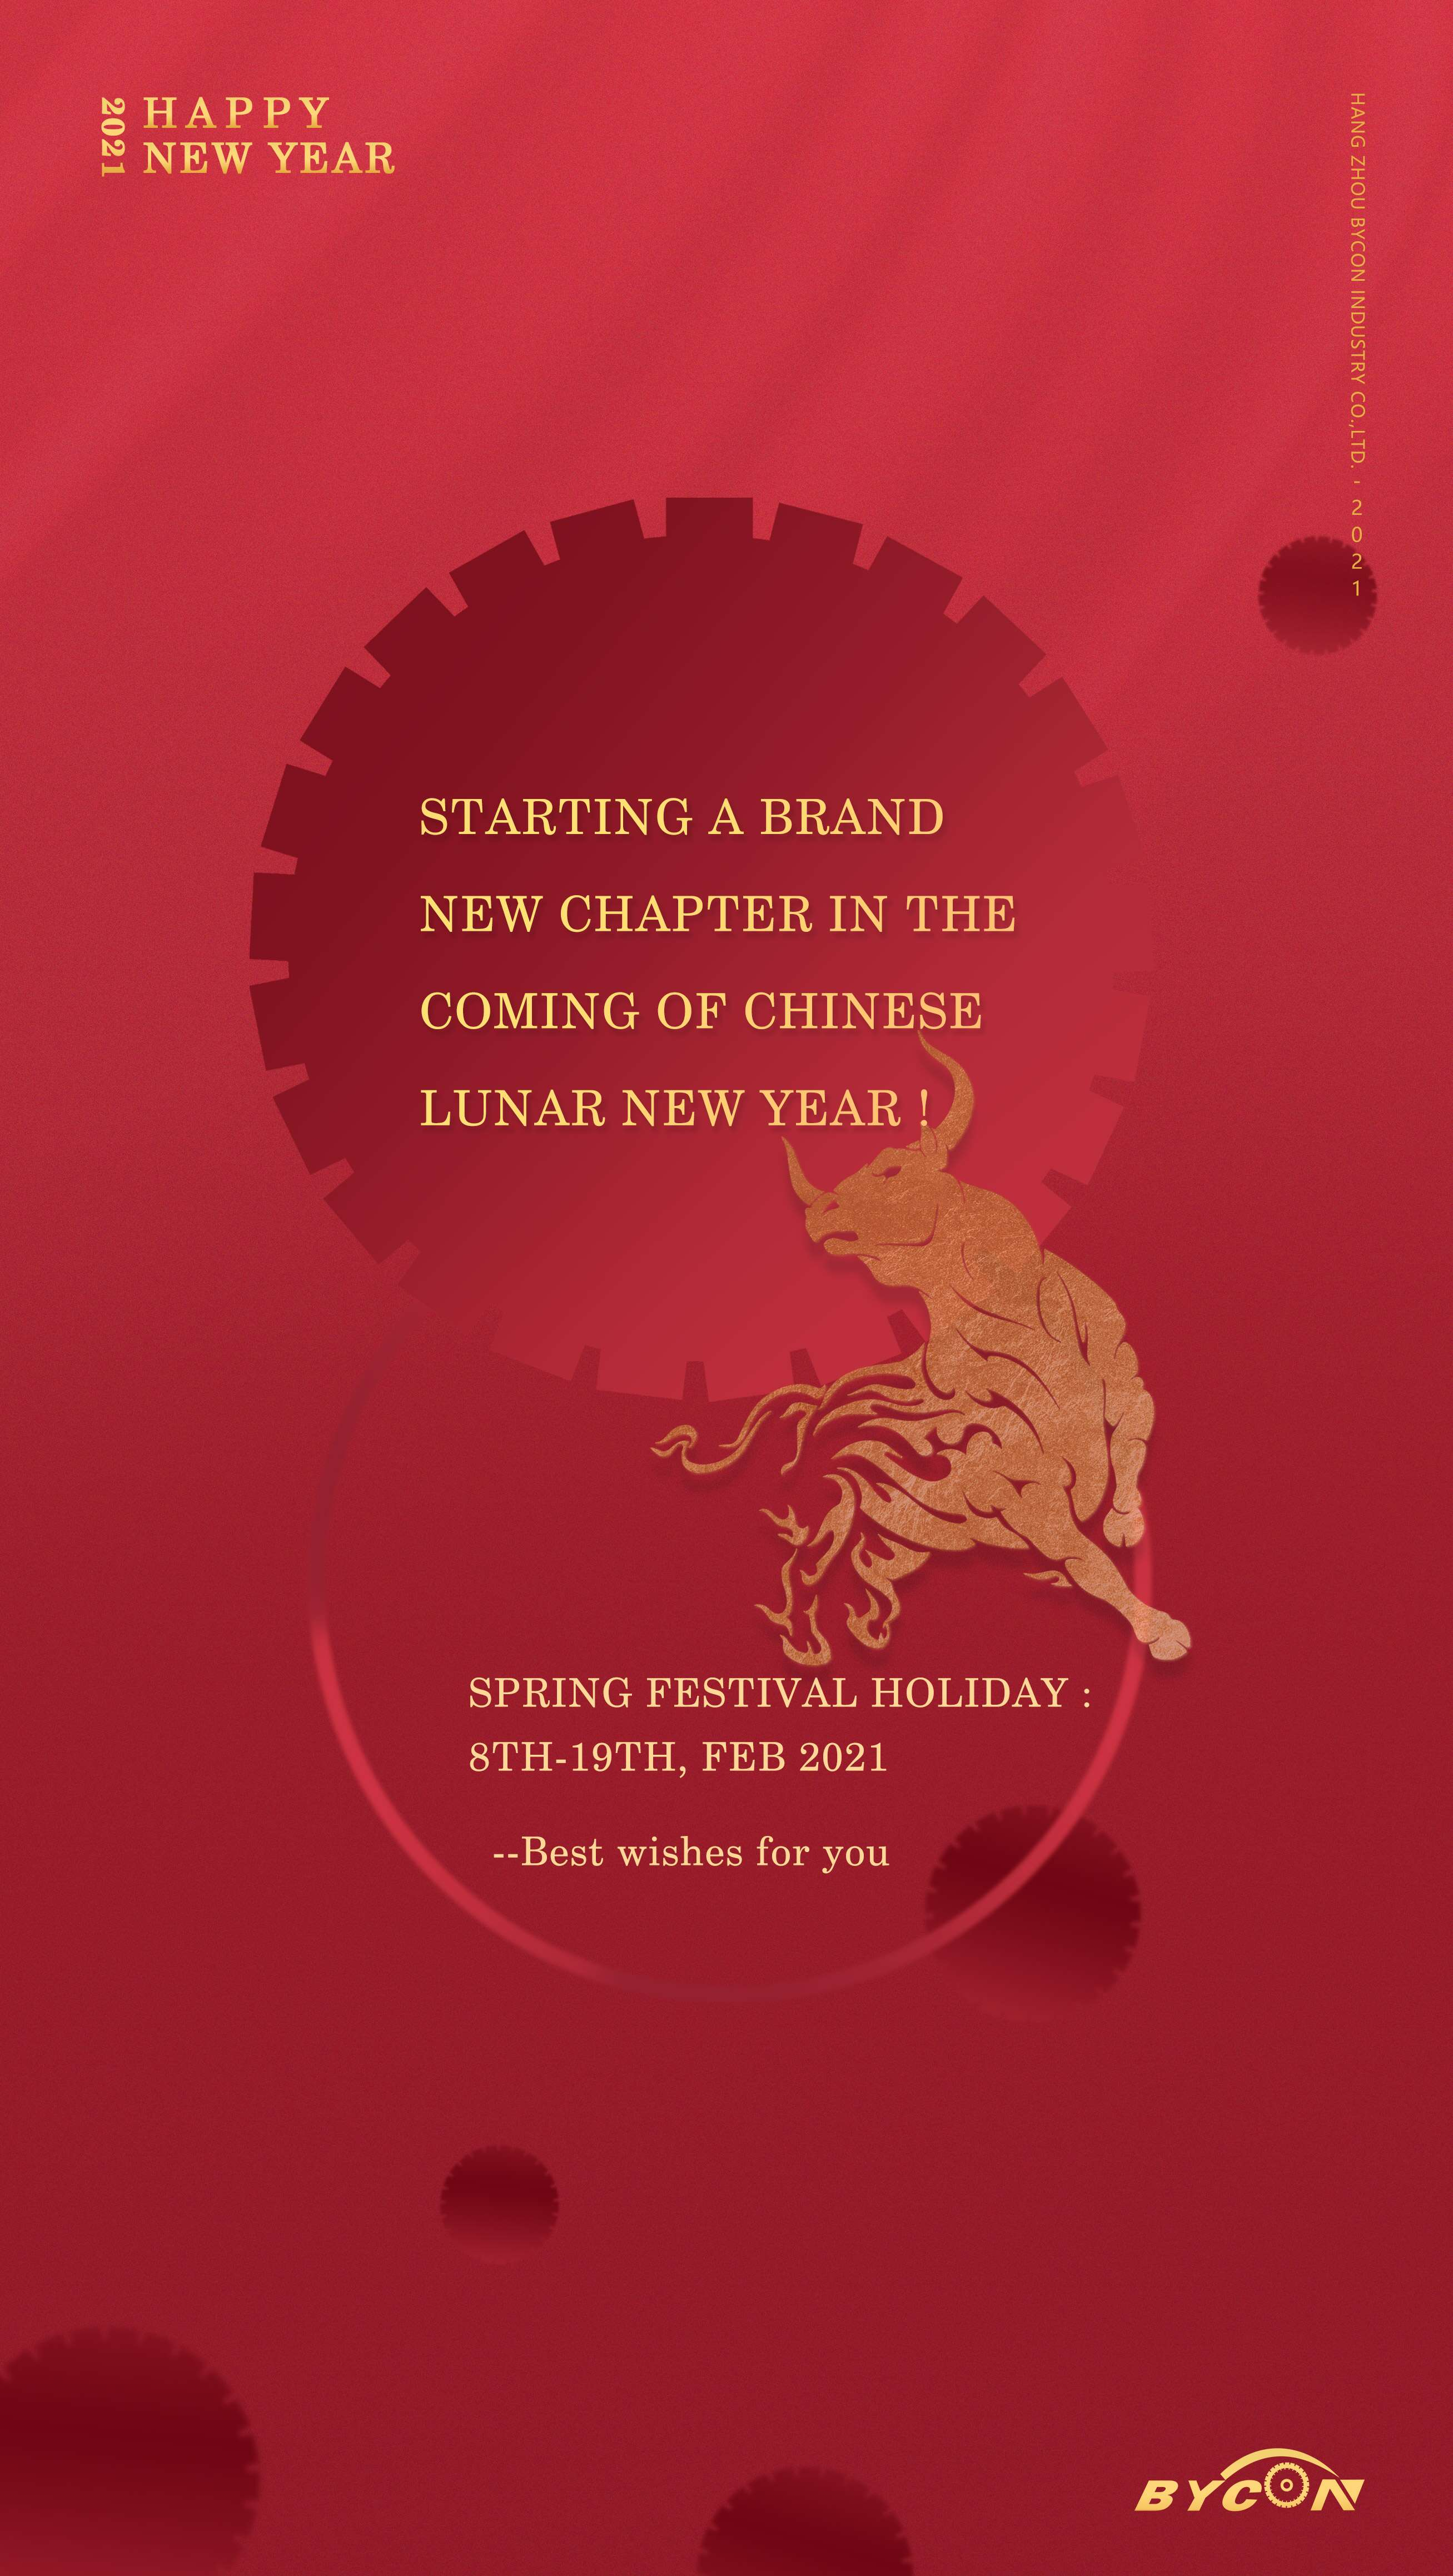 2021 Chinese Spring Festival Holiday